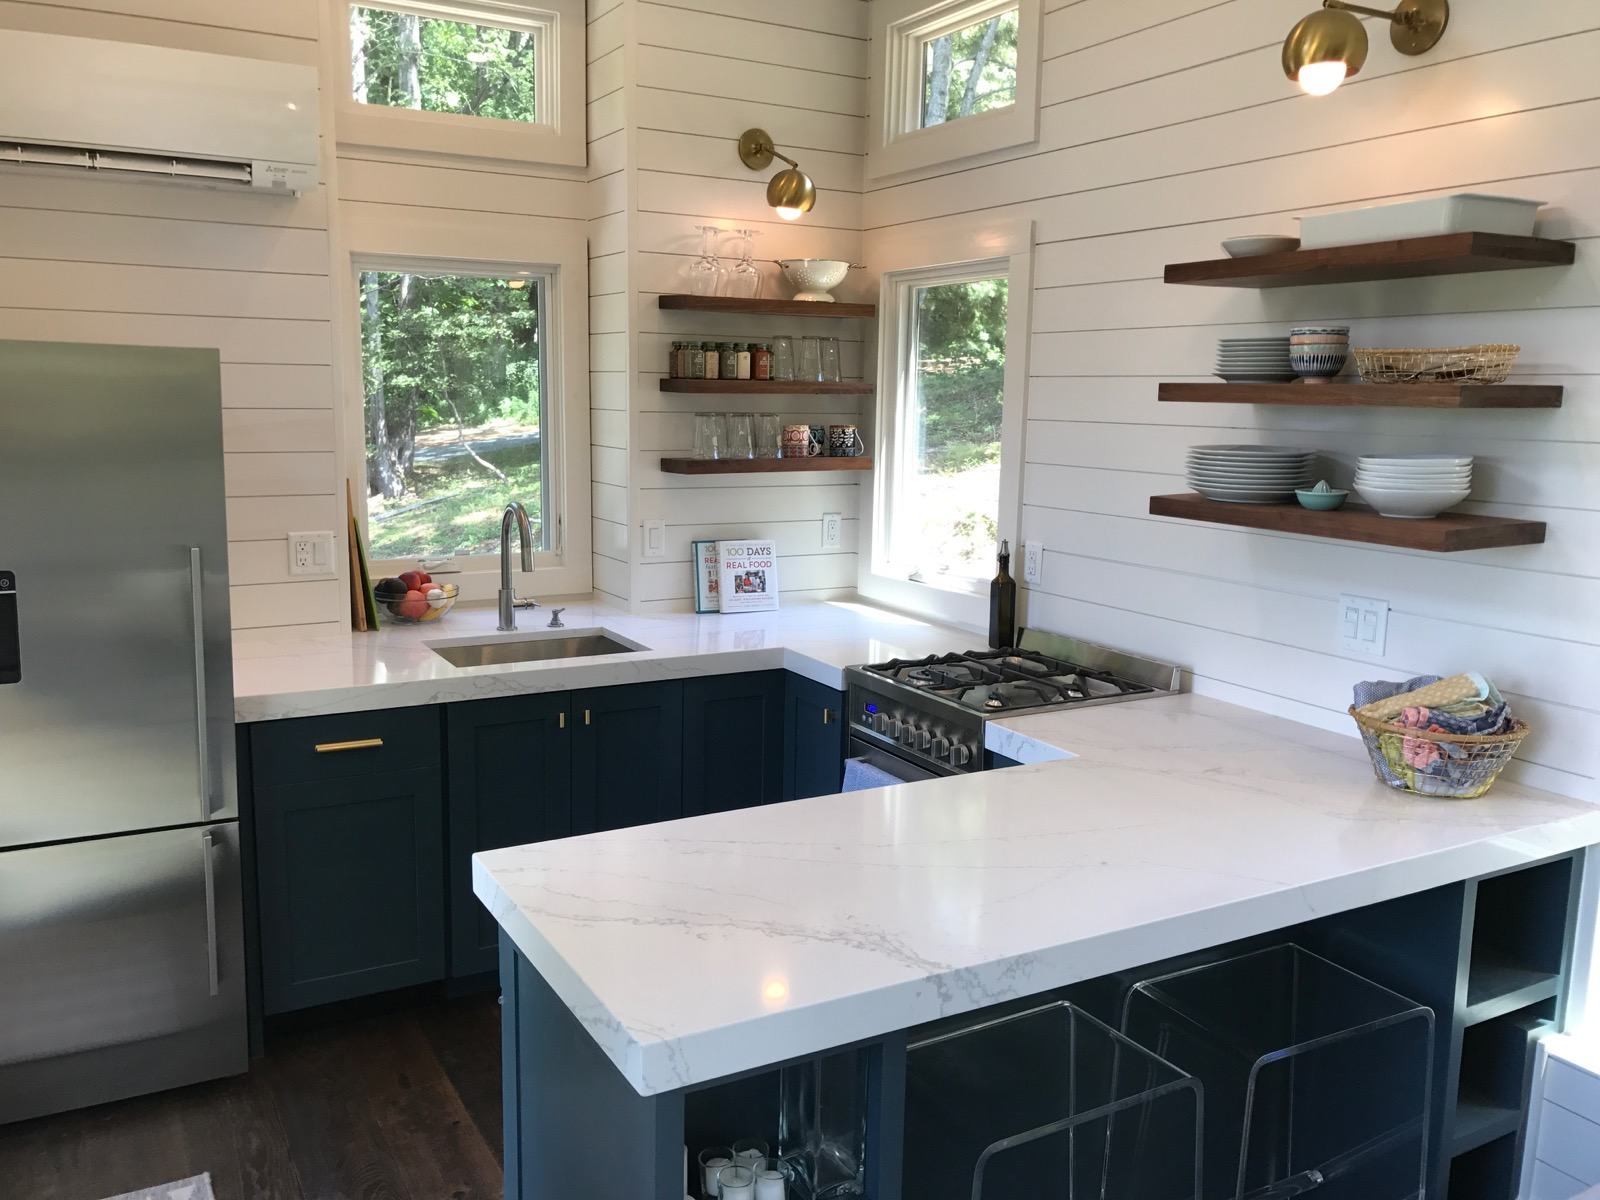 What's In Our New Tiny House Kitchen!  100 Days Of Real Food. Beach Wall Decor For Bathroom. Discounted Living Room Furniture. Norfolk Va Hotels With Jacuzzi In Room. Purple Dorm Room Decor. Zebra Home Decor. Bedroom Decor For Teenage Girl. Rooms Available Near Me. Candle Decoration